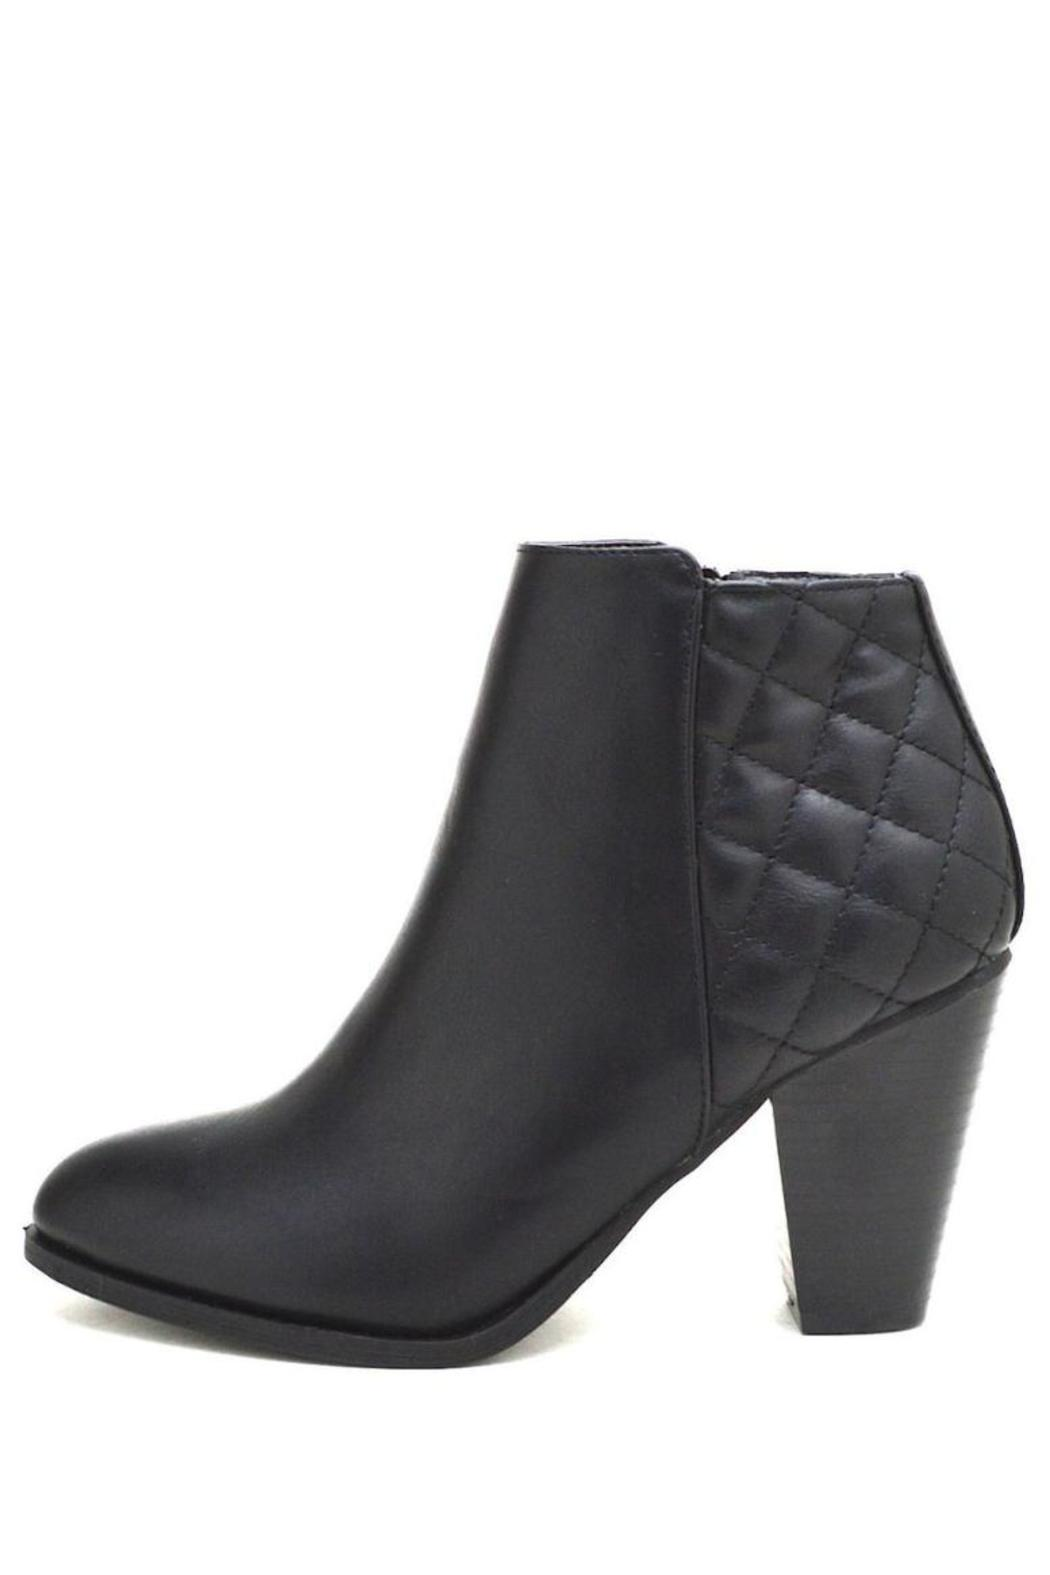 Bamboo Quilted Chunky Heel Booties from Georgia by North & Main ... : quilted booties - Adamdwight.com